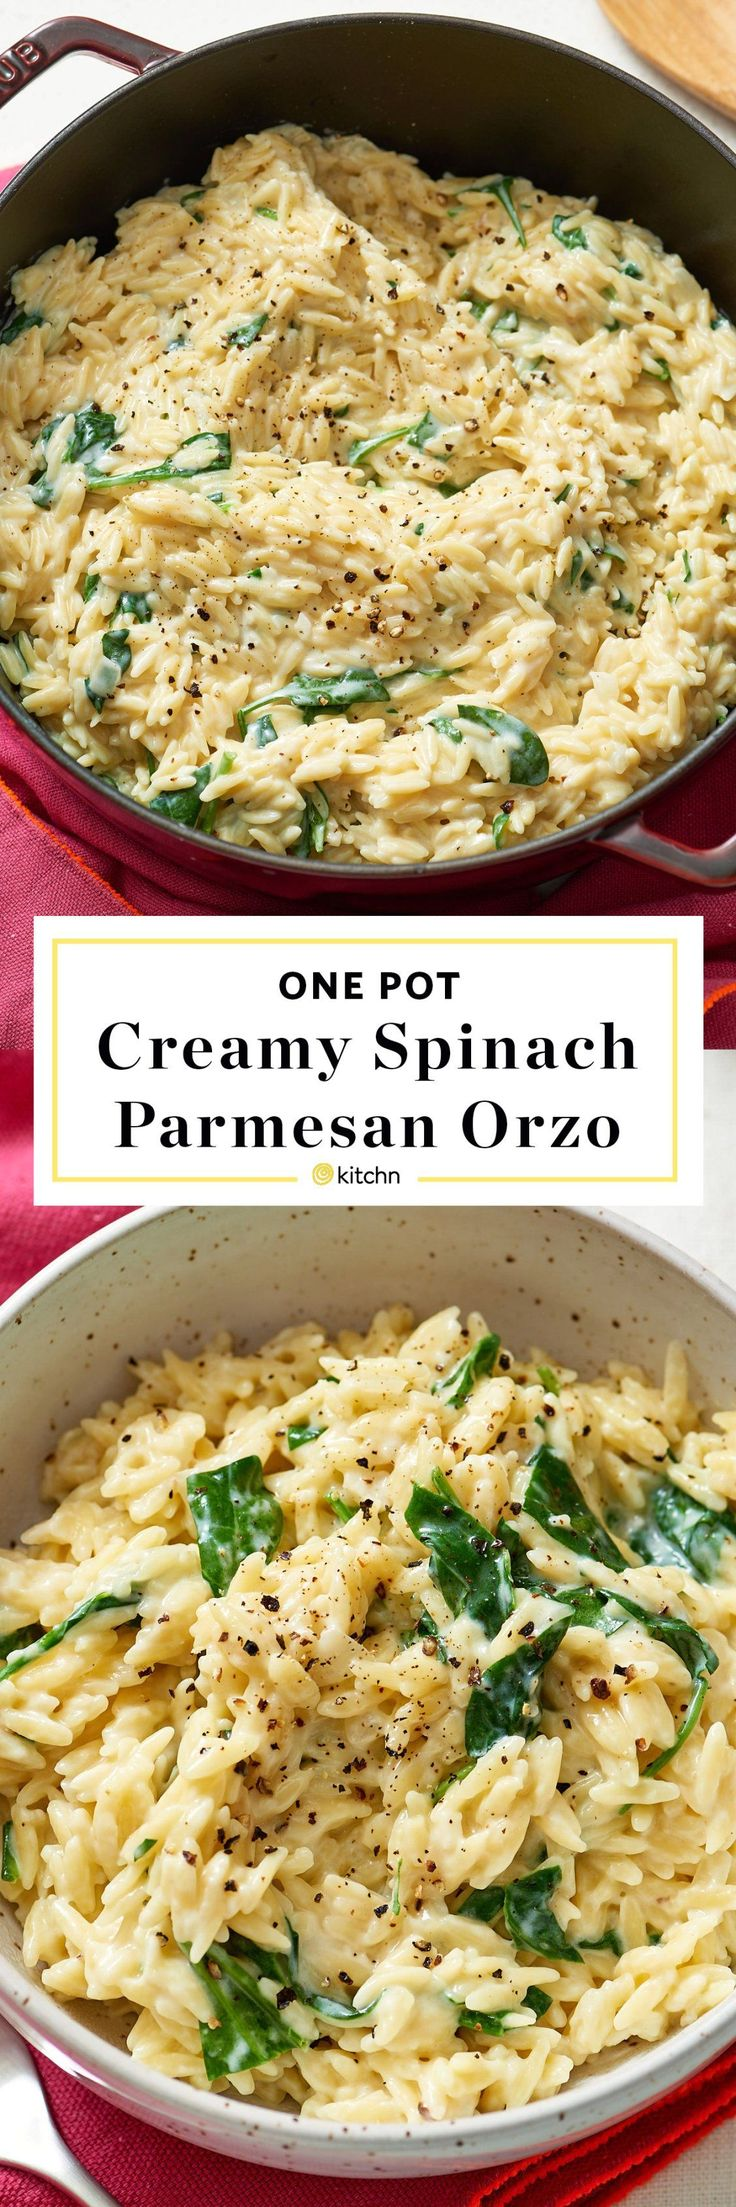 One Pot, Pan, or Dish Creamy Spinach, Parmesan & Orzo Pasta Recipe. Need recipes and ideas for easy weeknight dinners and meals? Vegetarian and perfect for a side dish or a main dish. To make this modern comfort food, you'll need: olive oil, onion, garlic, orzo, chicken or veggie/vegetable broth, milk, baby spinach or other greens, parm cheese. #easyrecipes